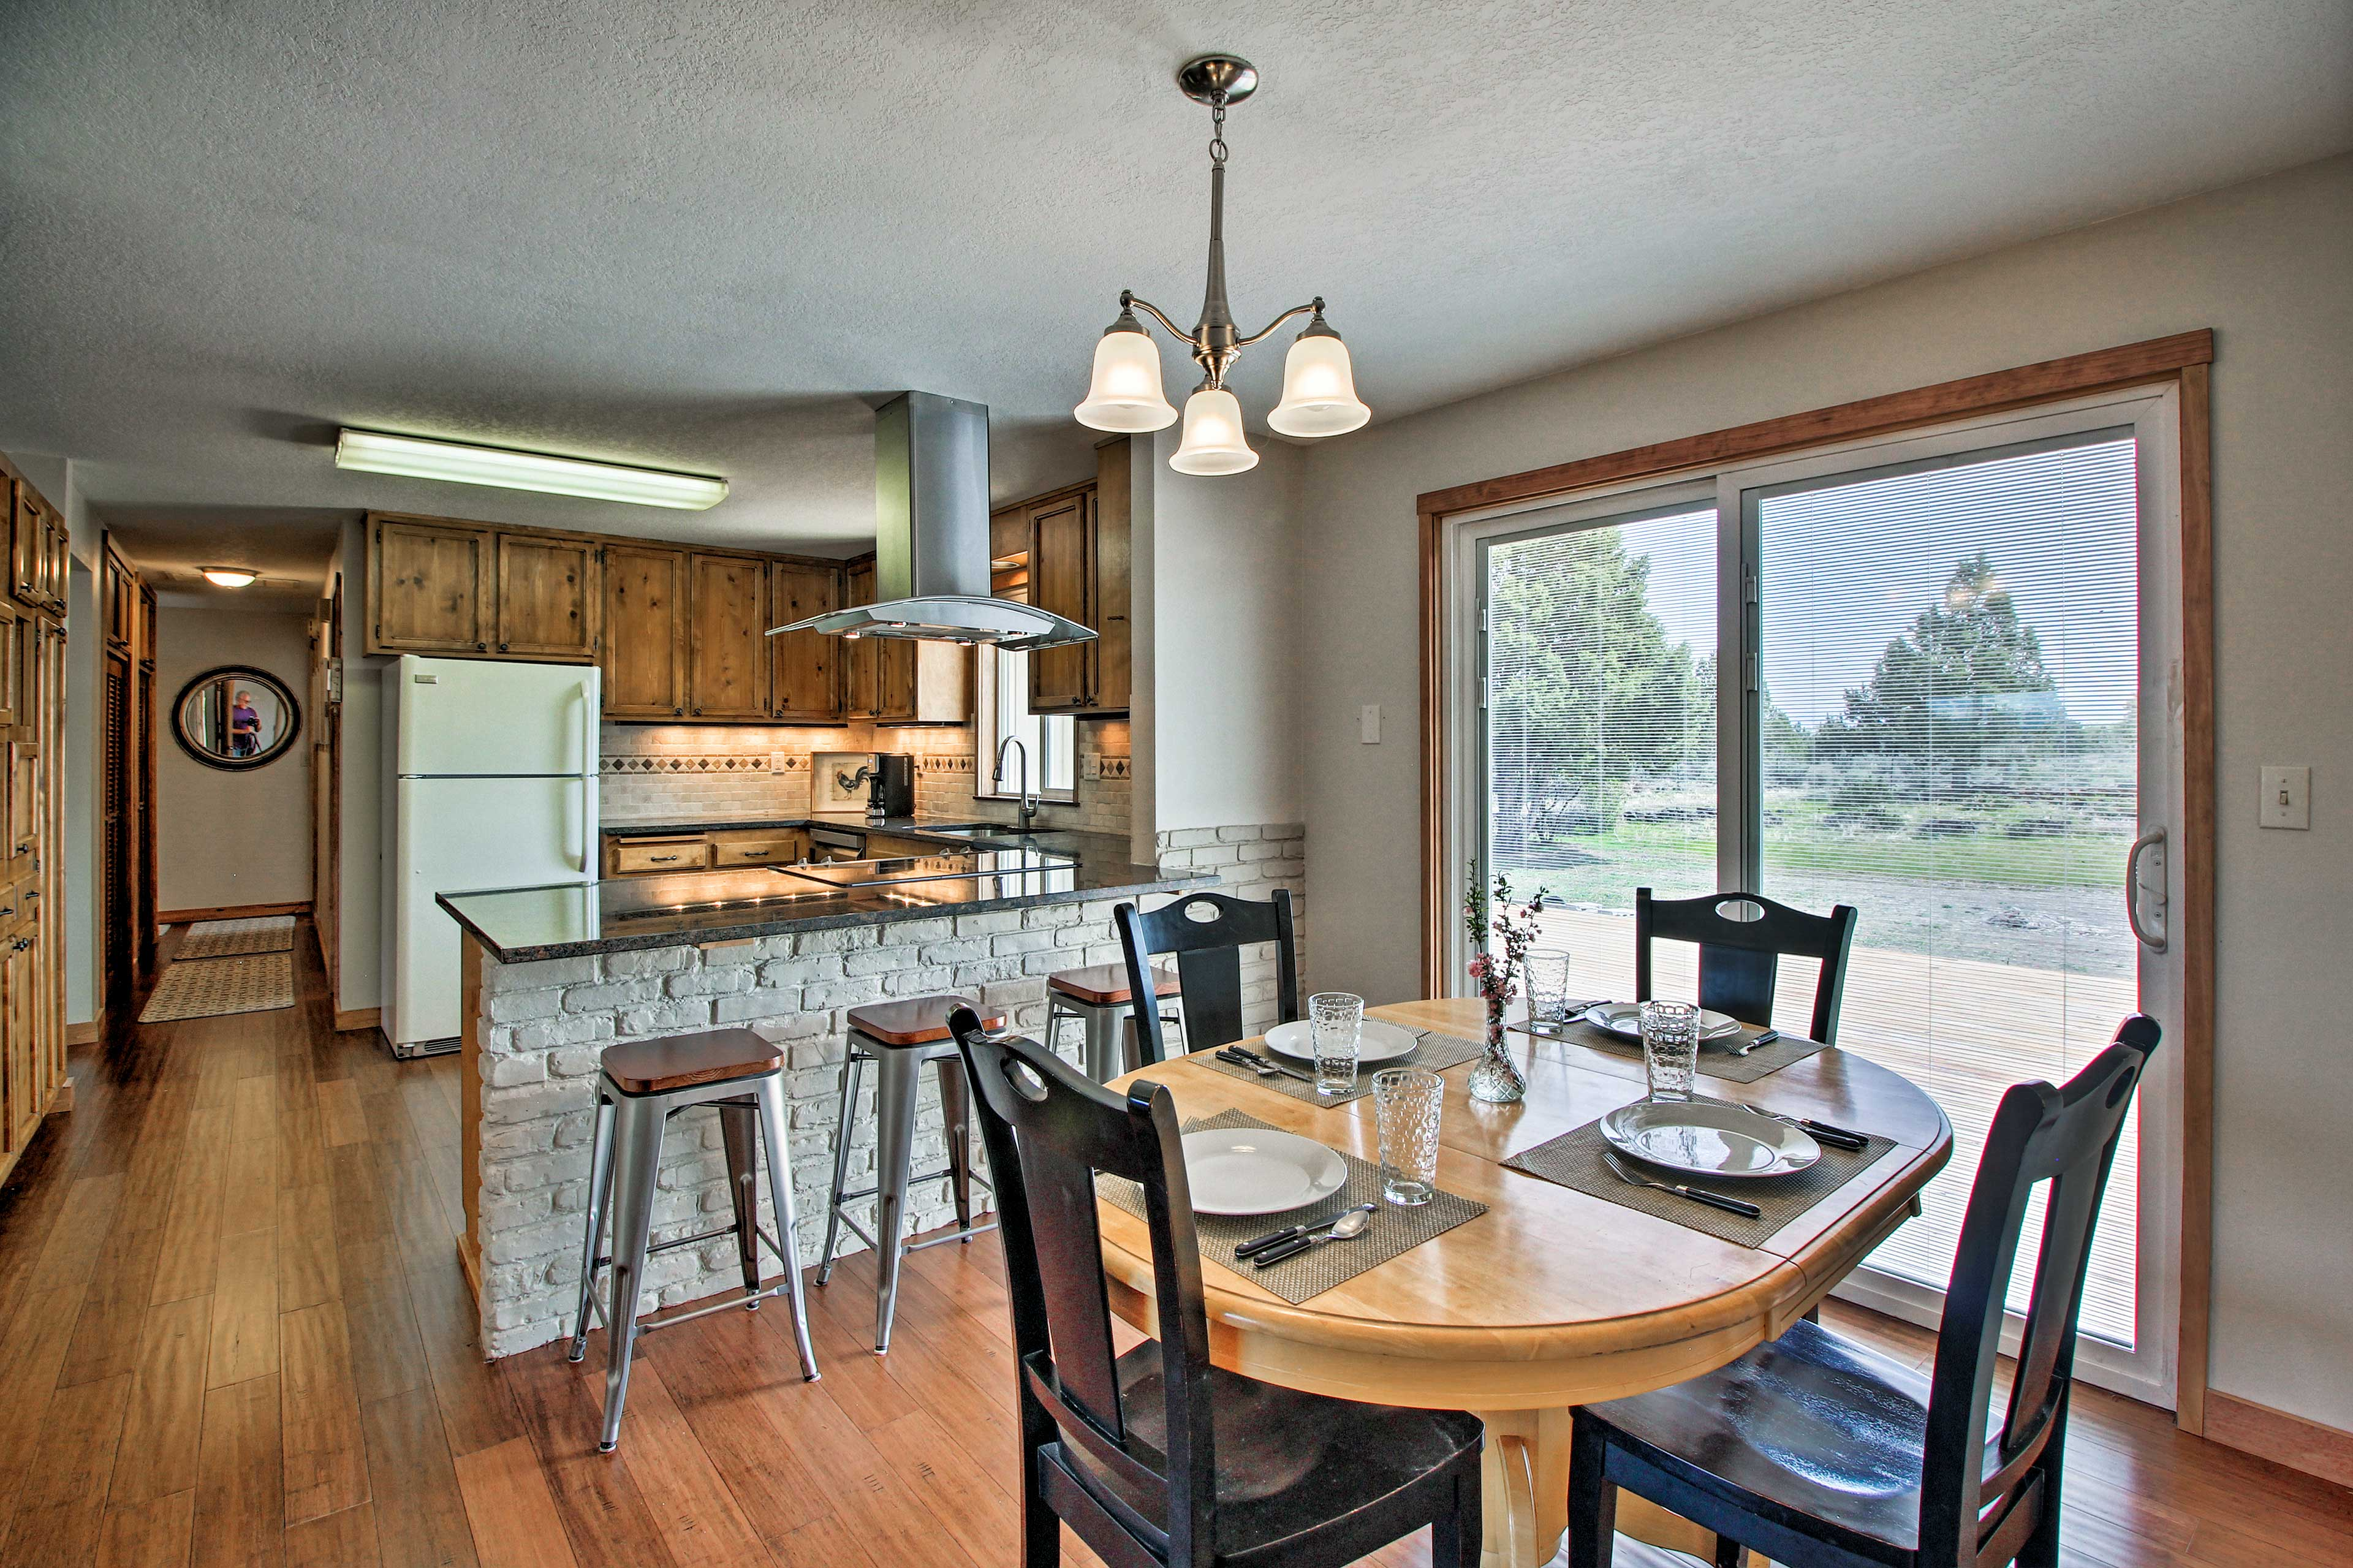 Book your East Bend escape to this private 4-bedroom, 2-bath vacation rental!